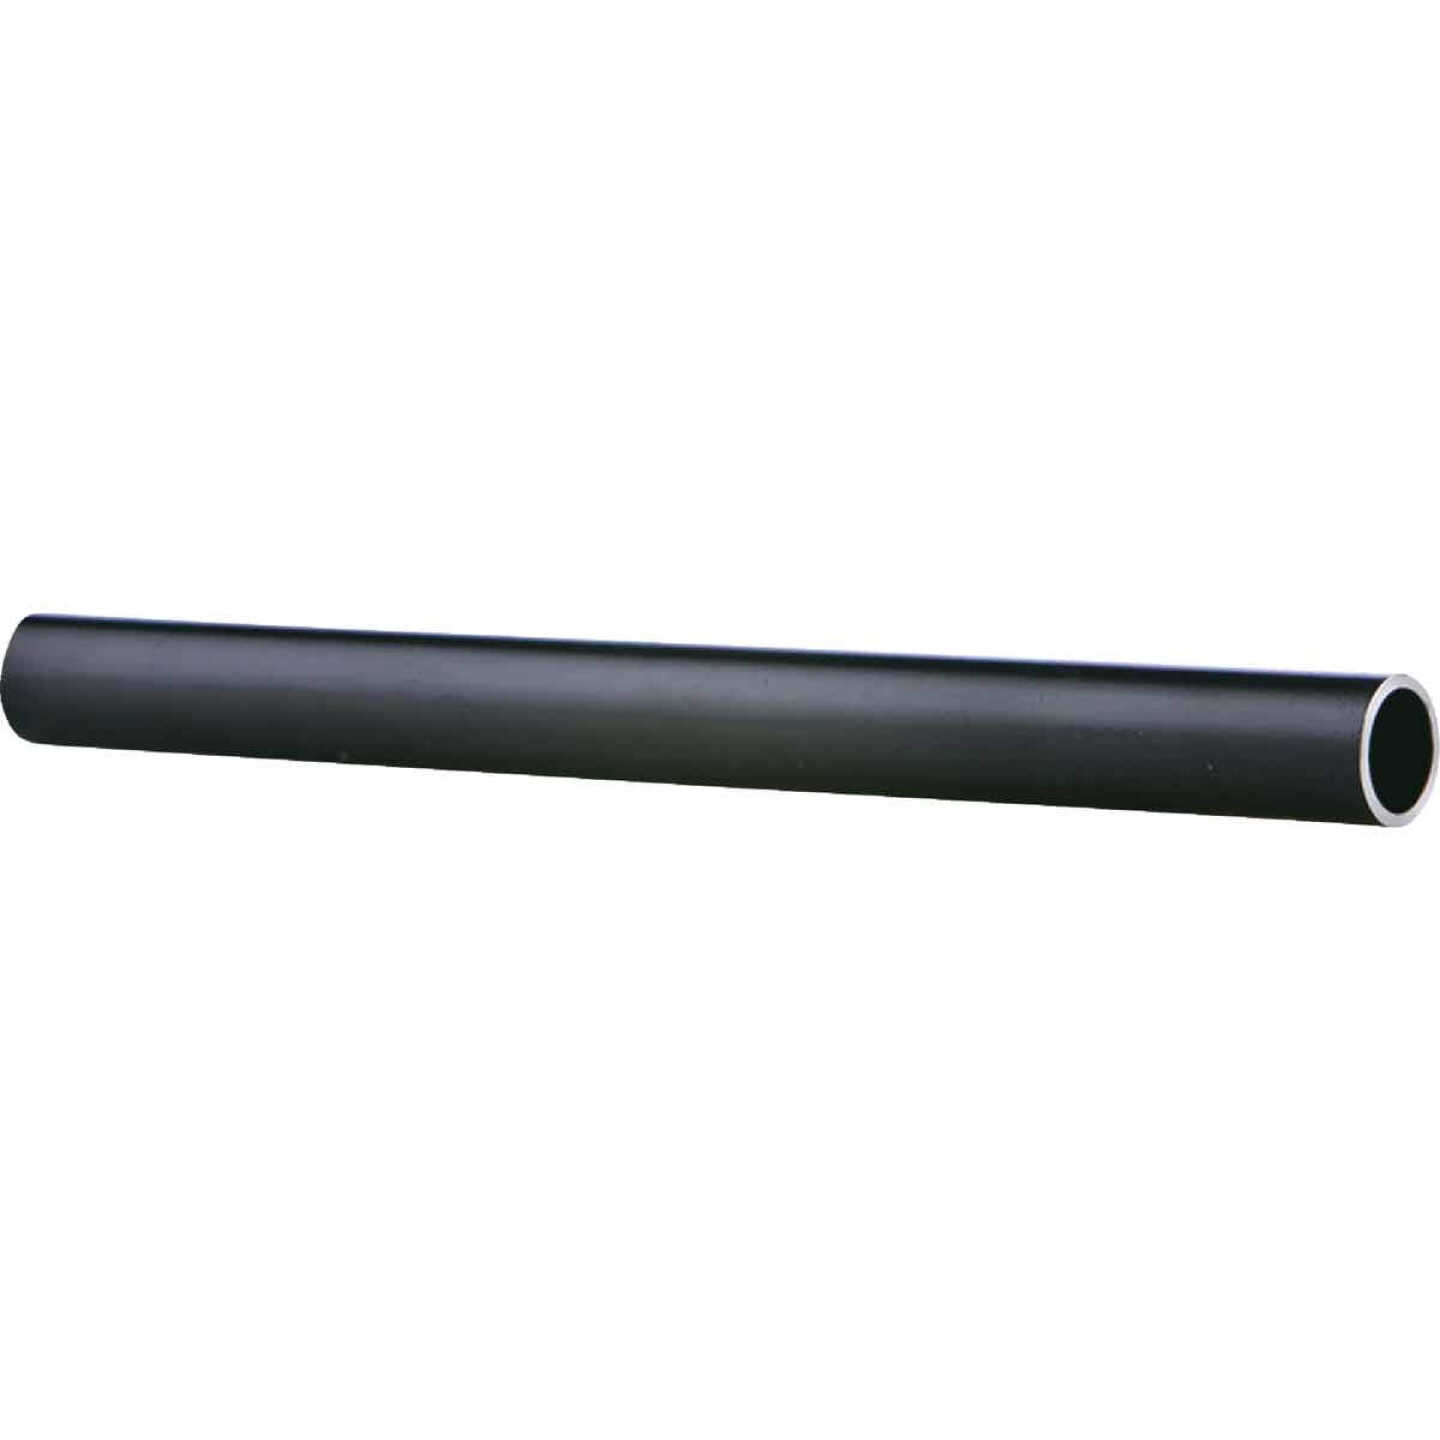 Southland 3/4 In. x 21 Ft. Carbon Steel Threaded and Coupled Black Pipe Image 1